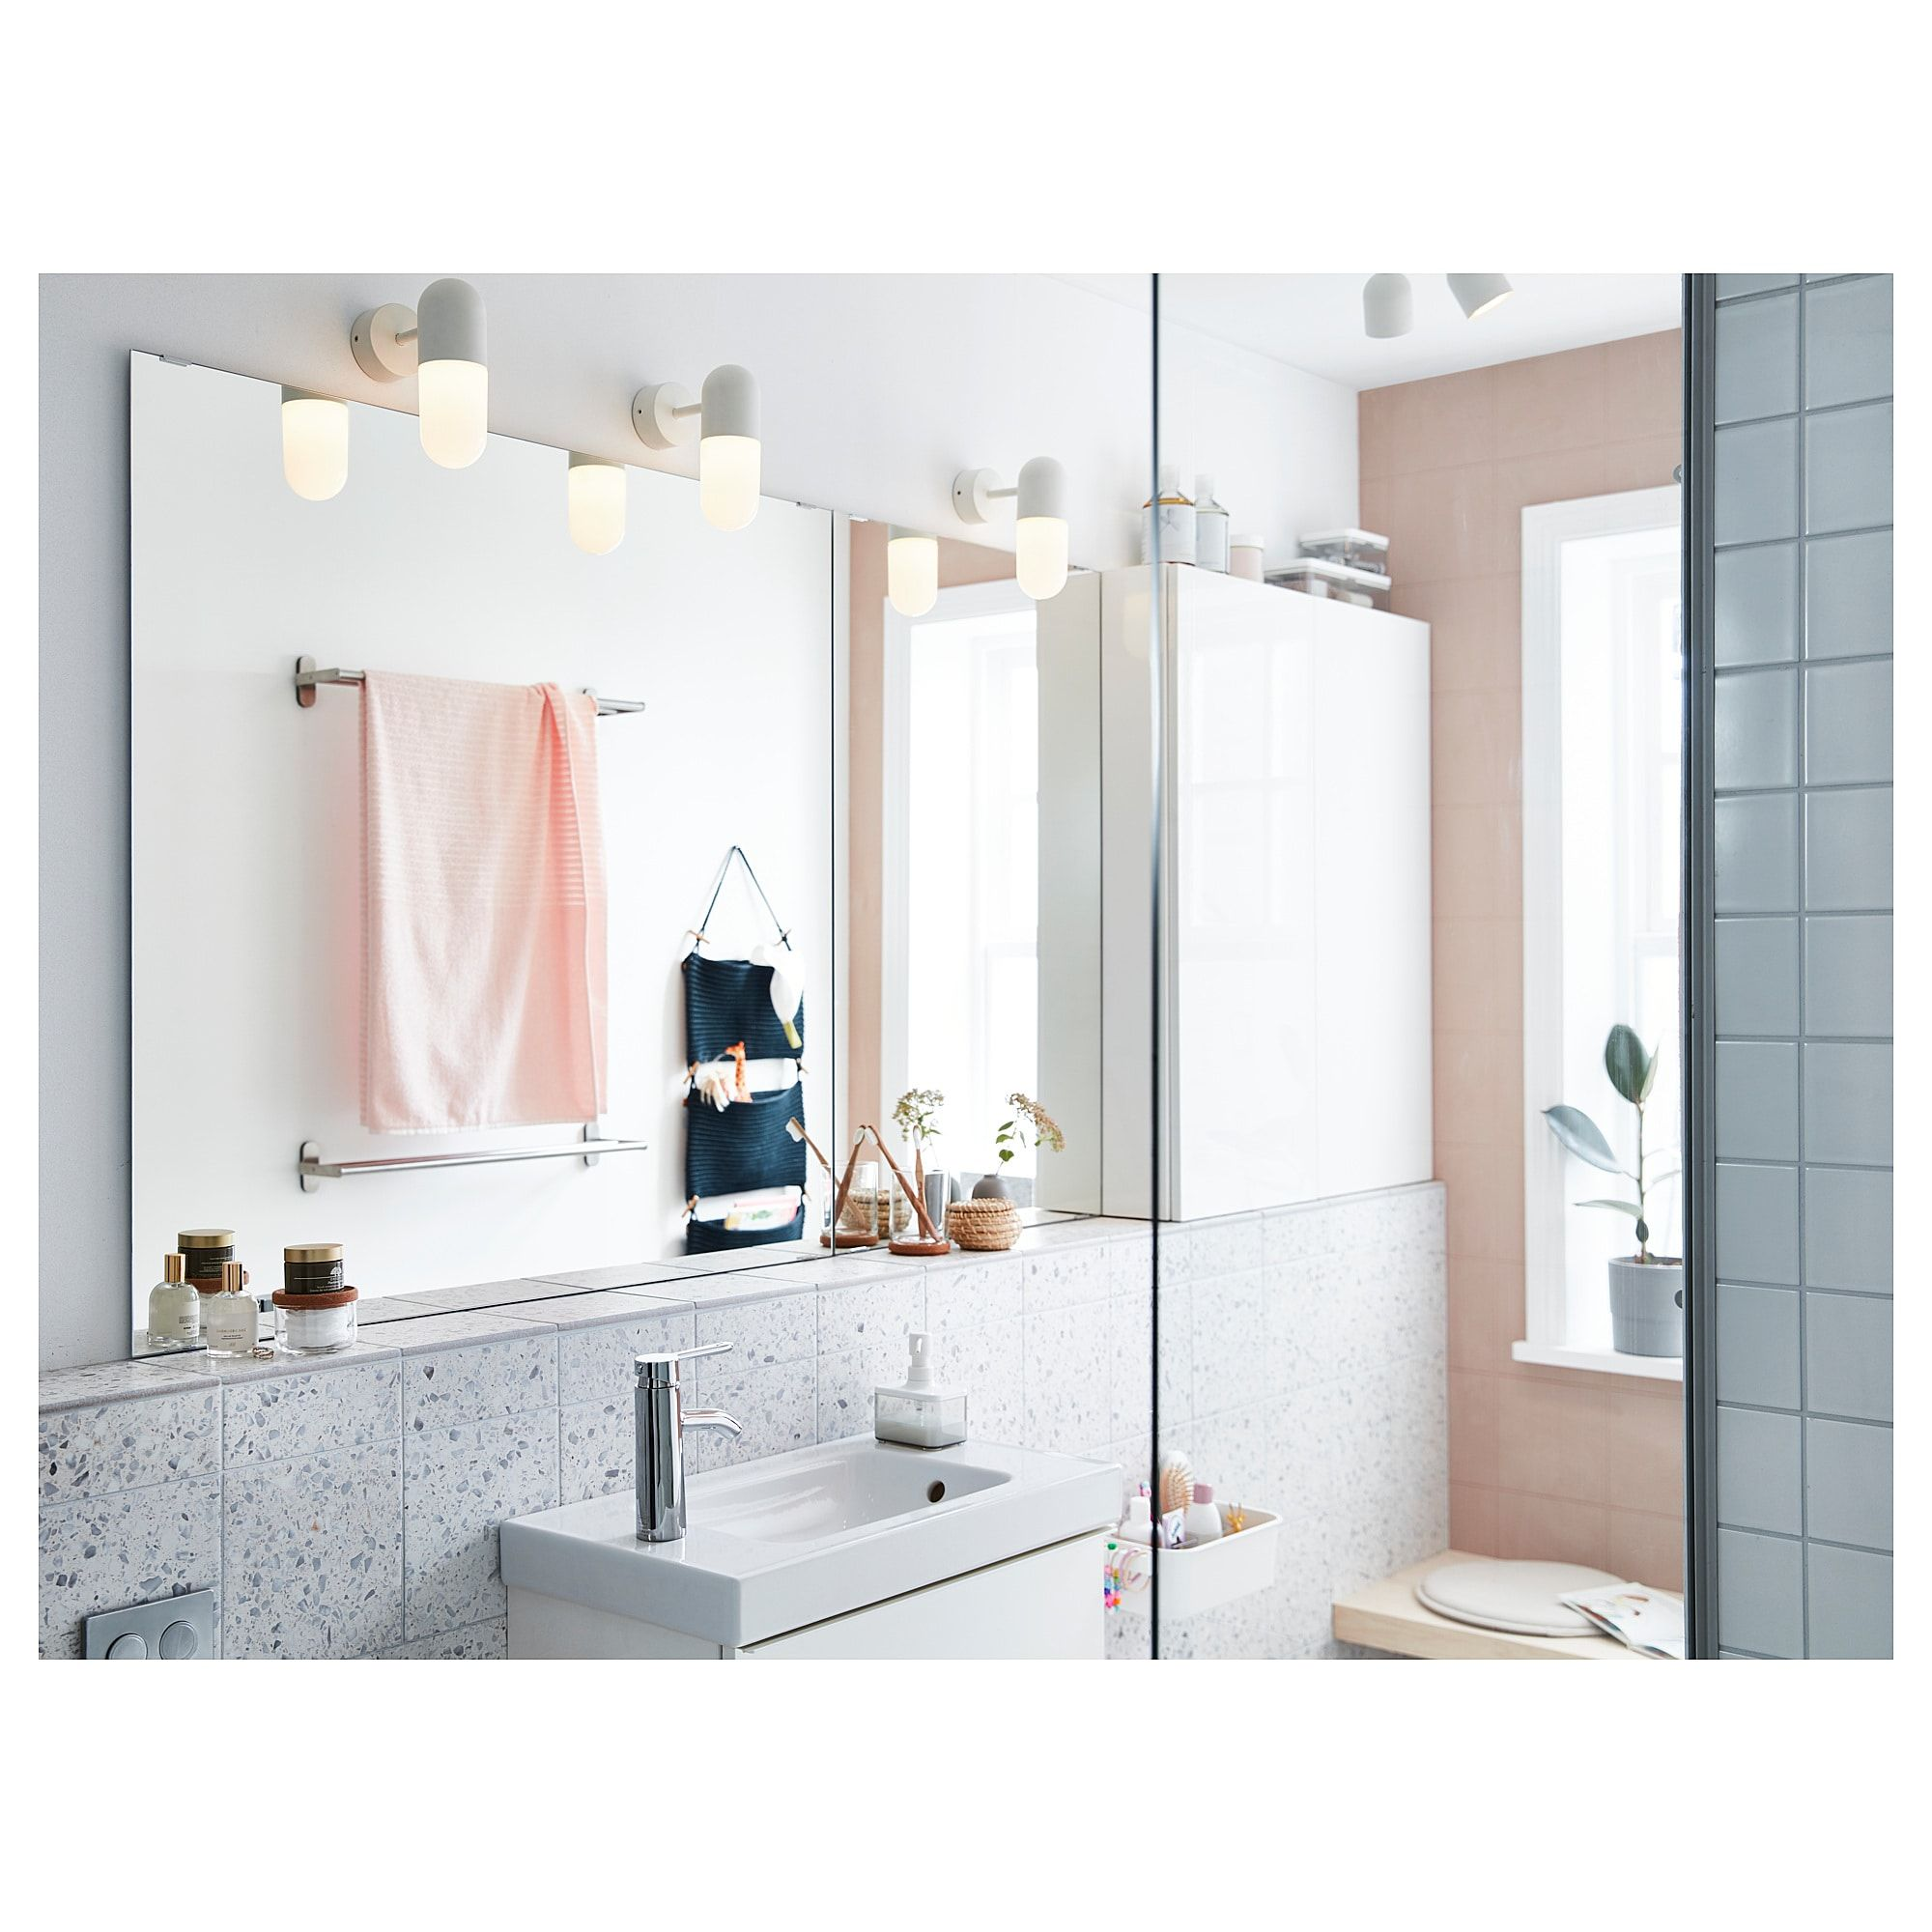 Ikea In Lamp Bathroom Östanå White 2019Products Wall lc3F1KTuJ